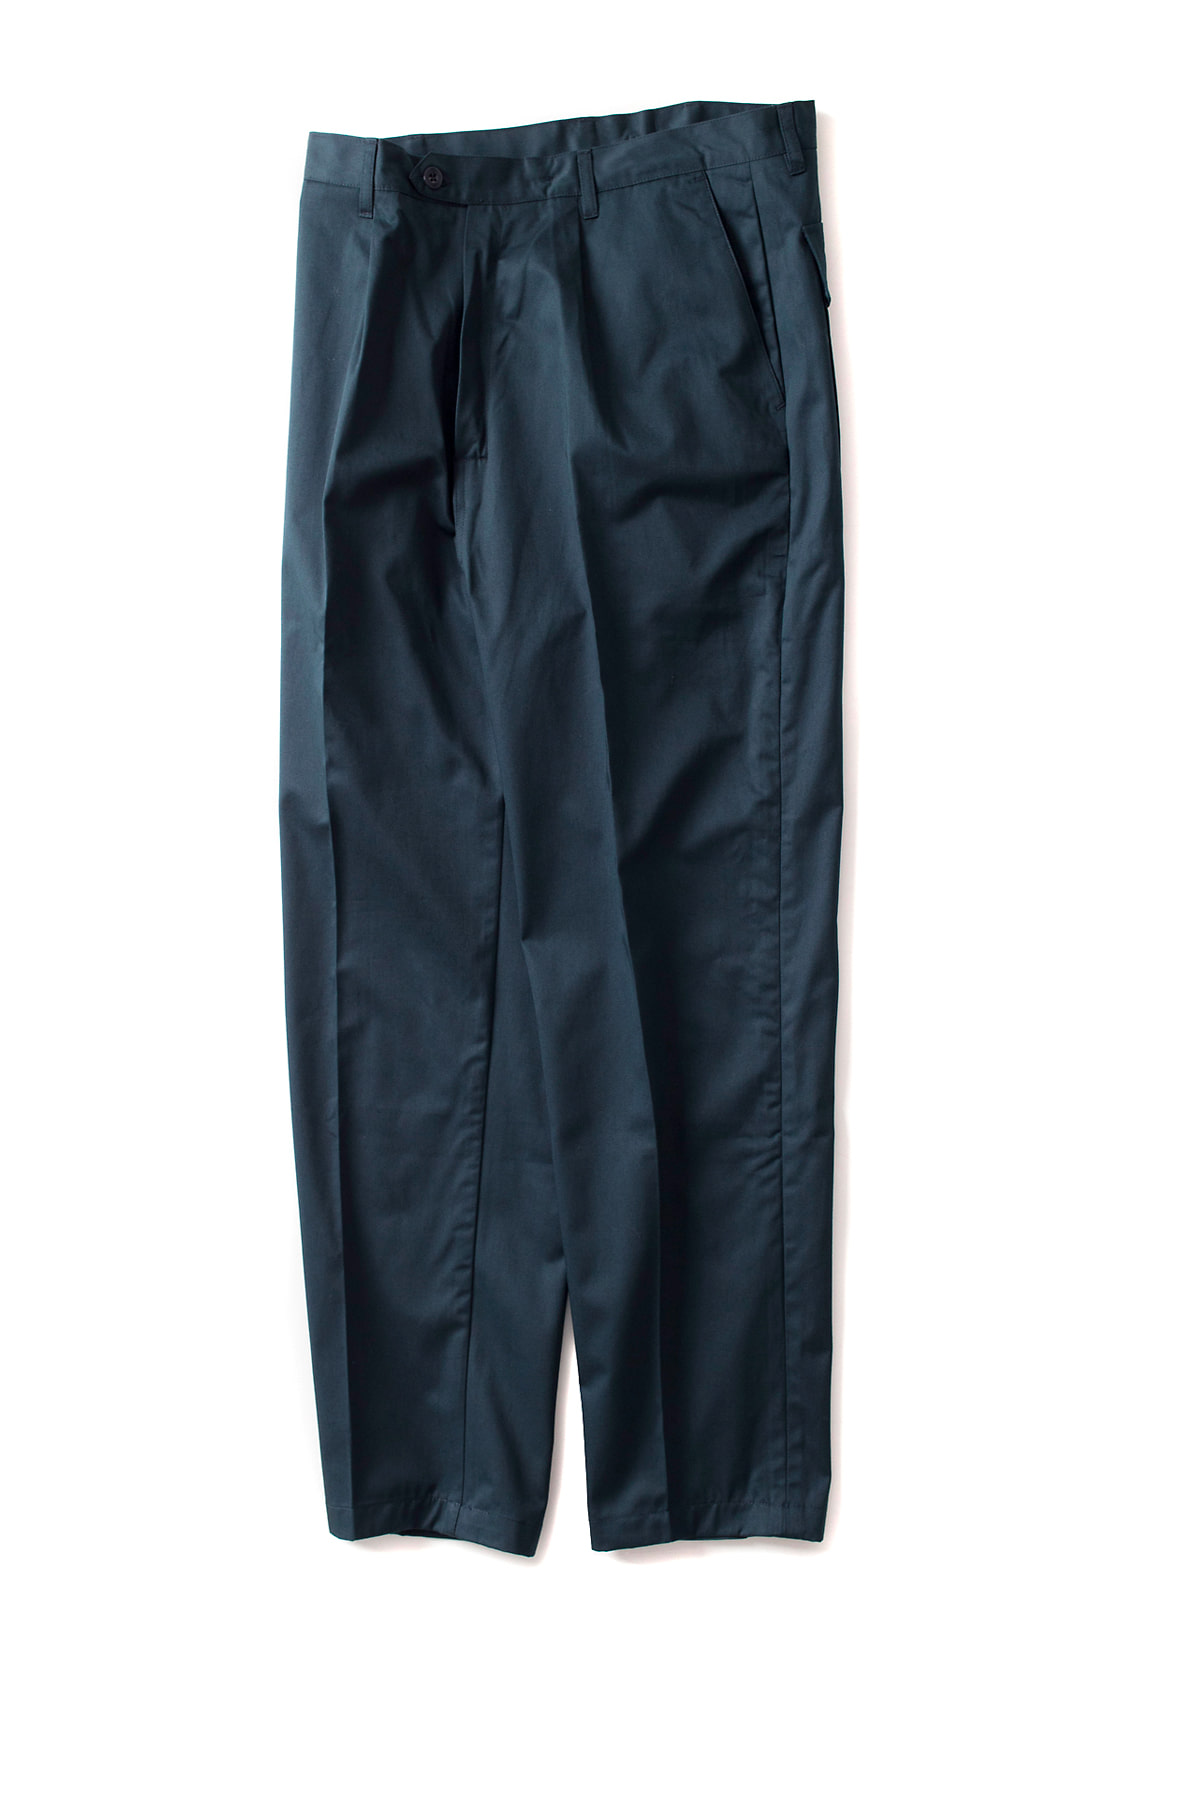 CAMO : Wide - Trousers (Drill Navy)